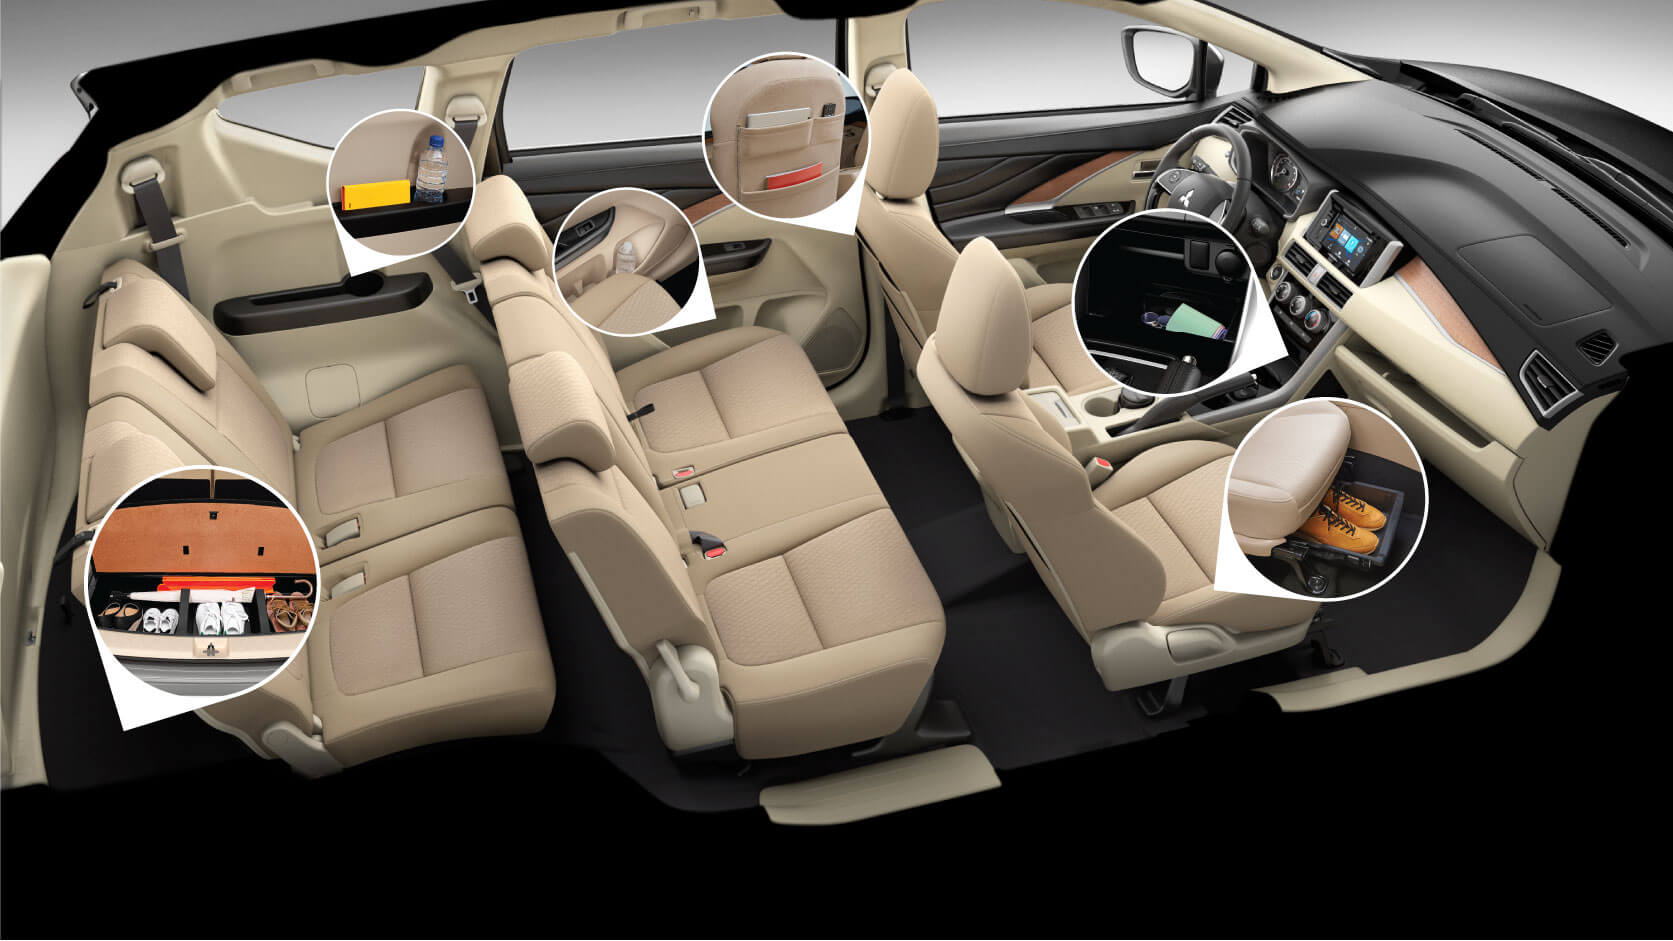 SPACIOUS & COMFORTABLE INTERIOR